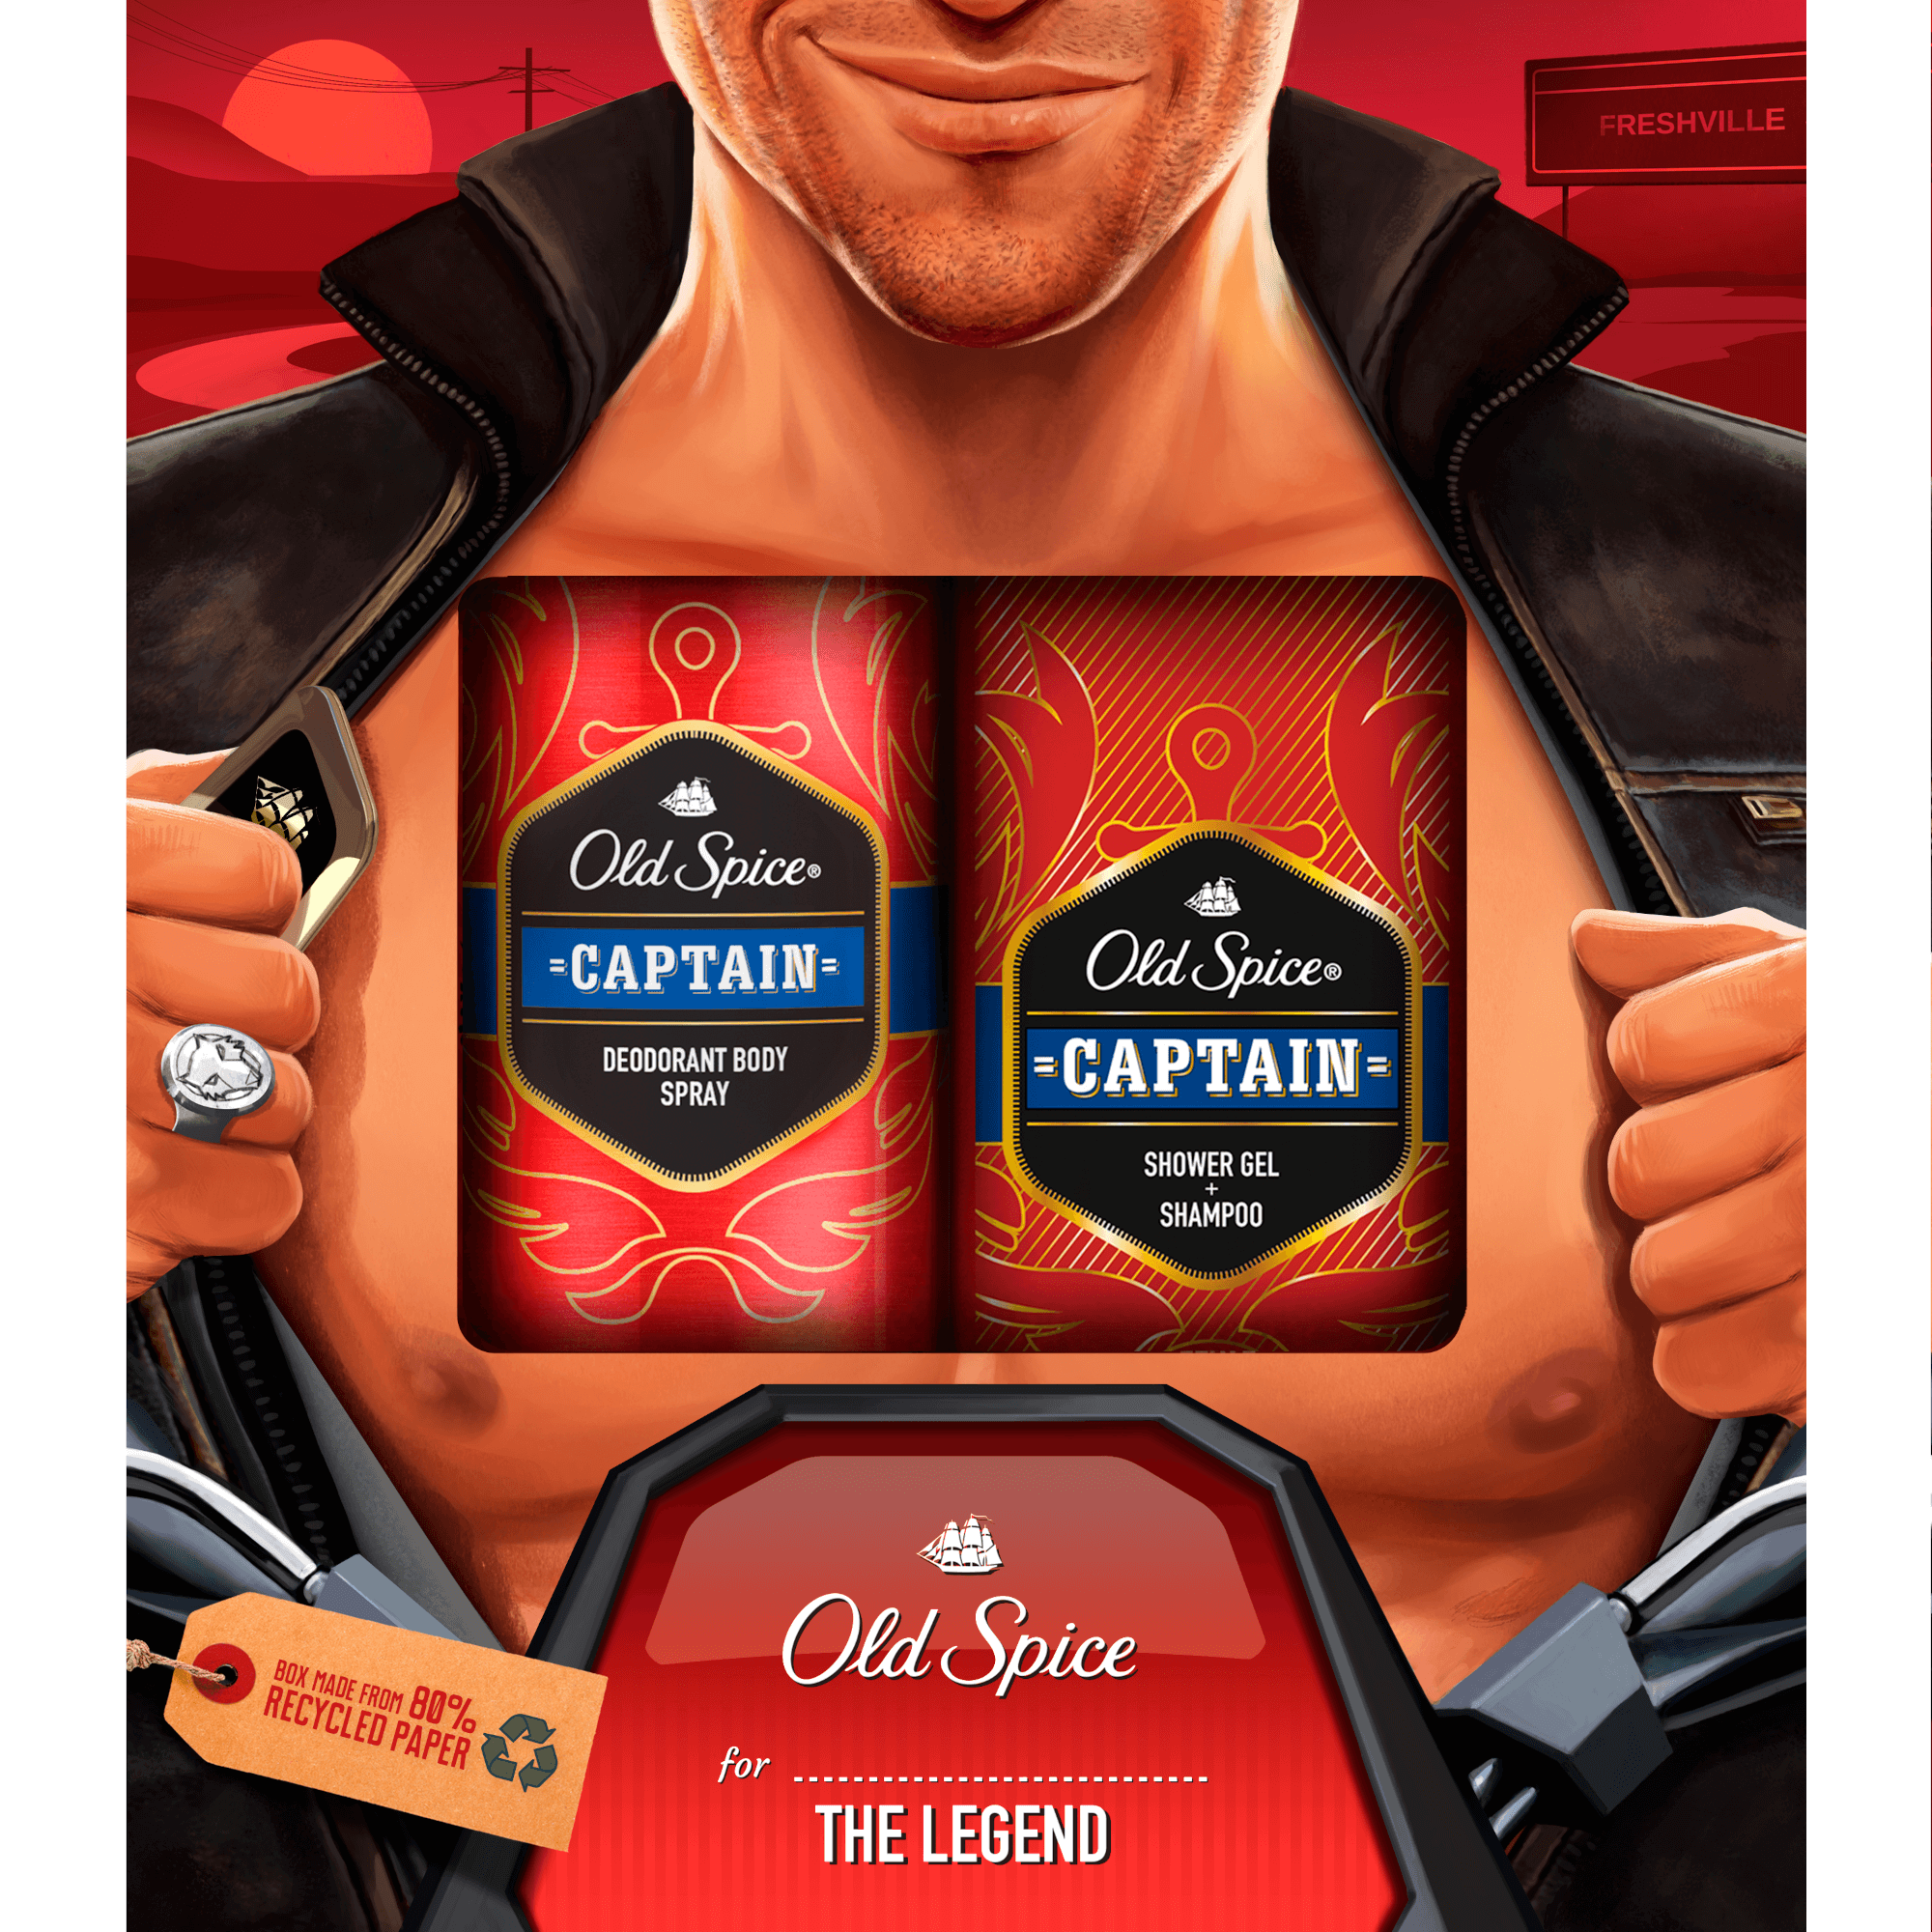 Old Spice VB Captain Deo Spray 150ml + SG 250ml